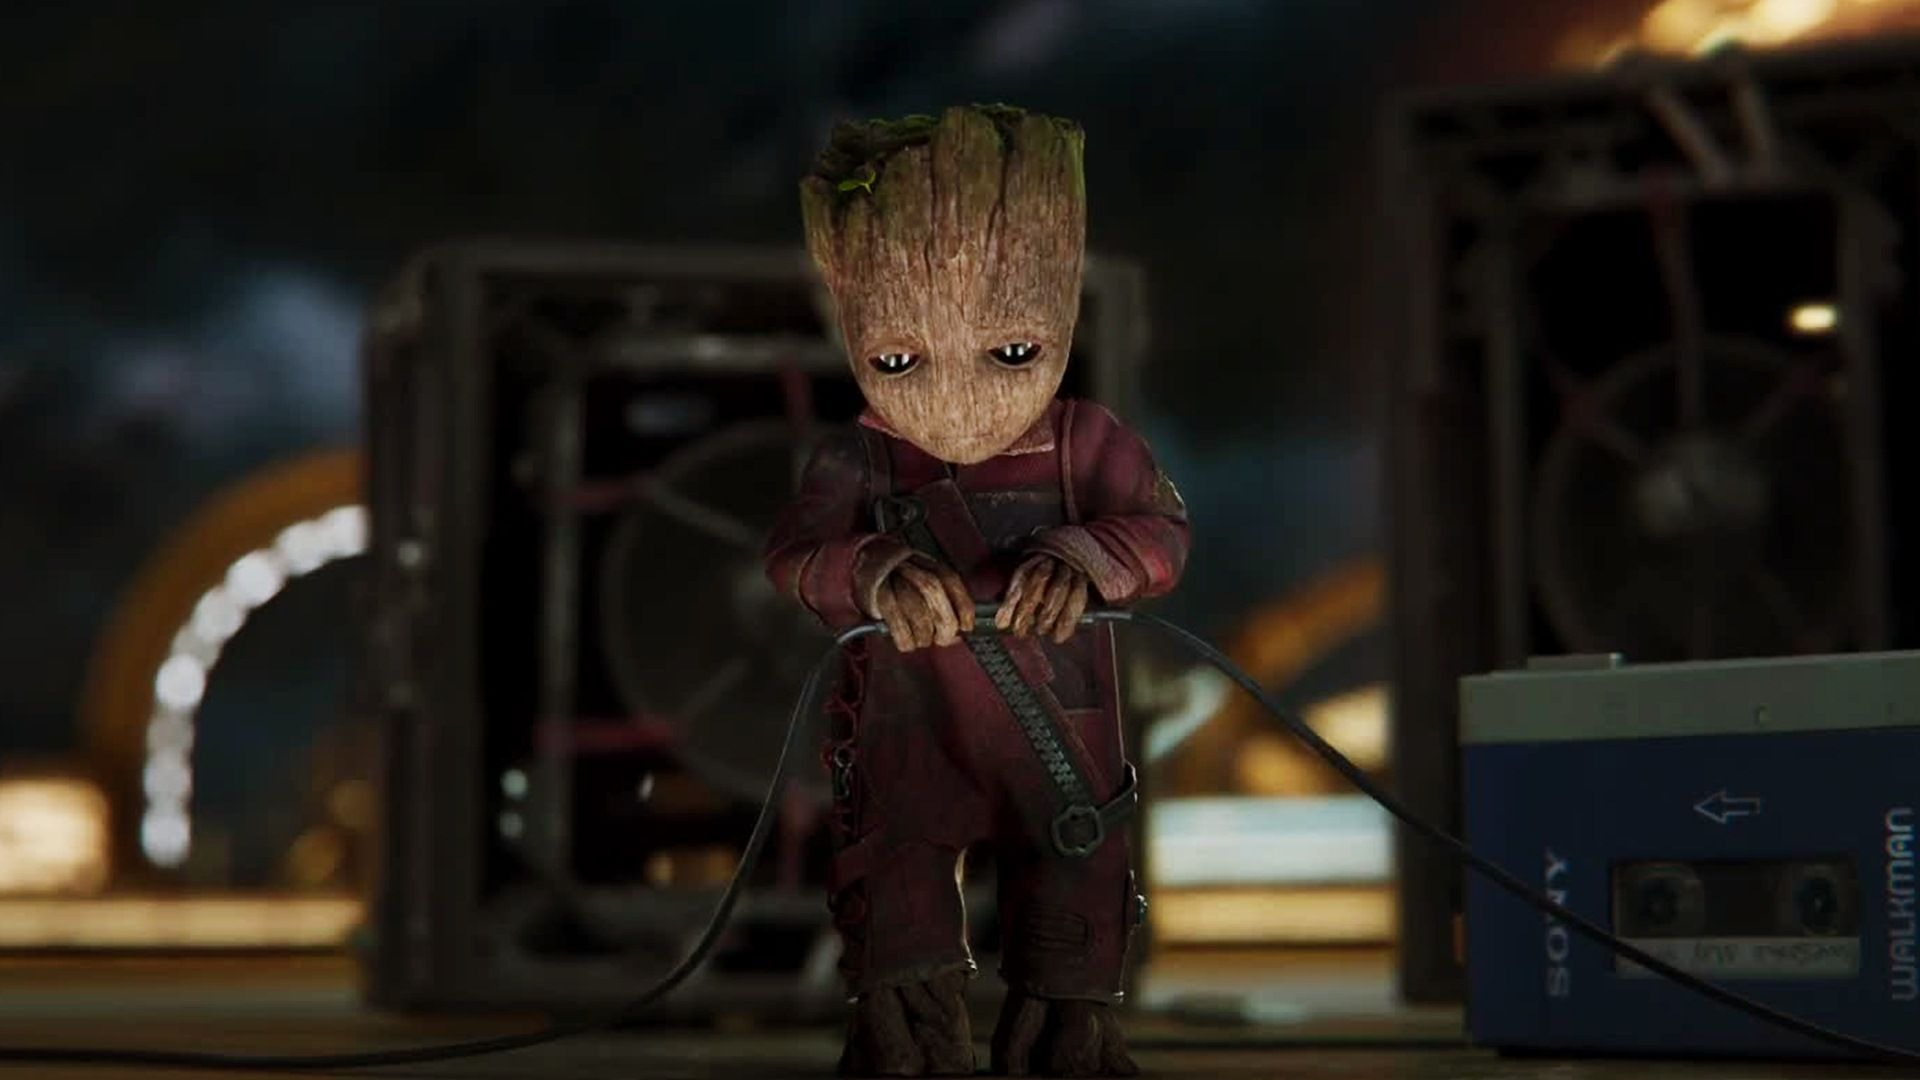 Download Baby Groot Wallpaper HD iCon Wallpaper HD Baby